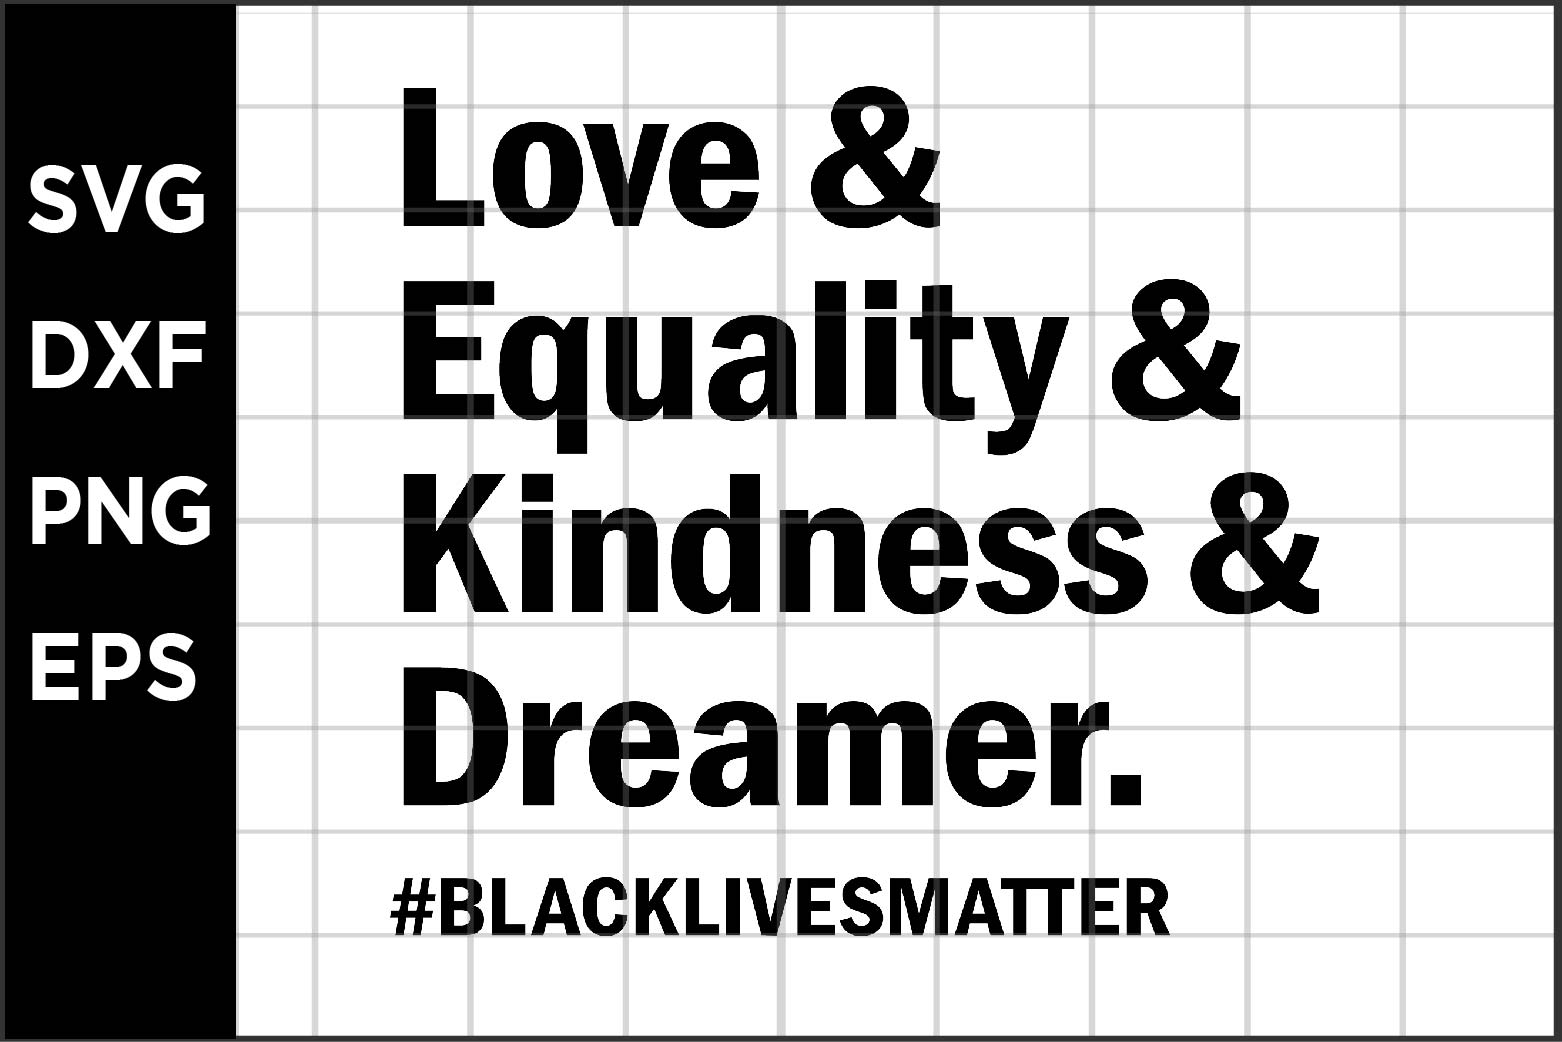 Download Free Love Equality Kindness Dreamer Graphic By Spoonyprint for Cricut Explore, Silhouette and other cutting machines.